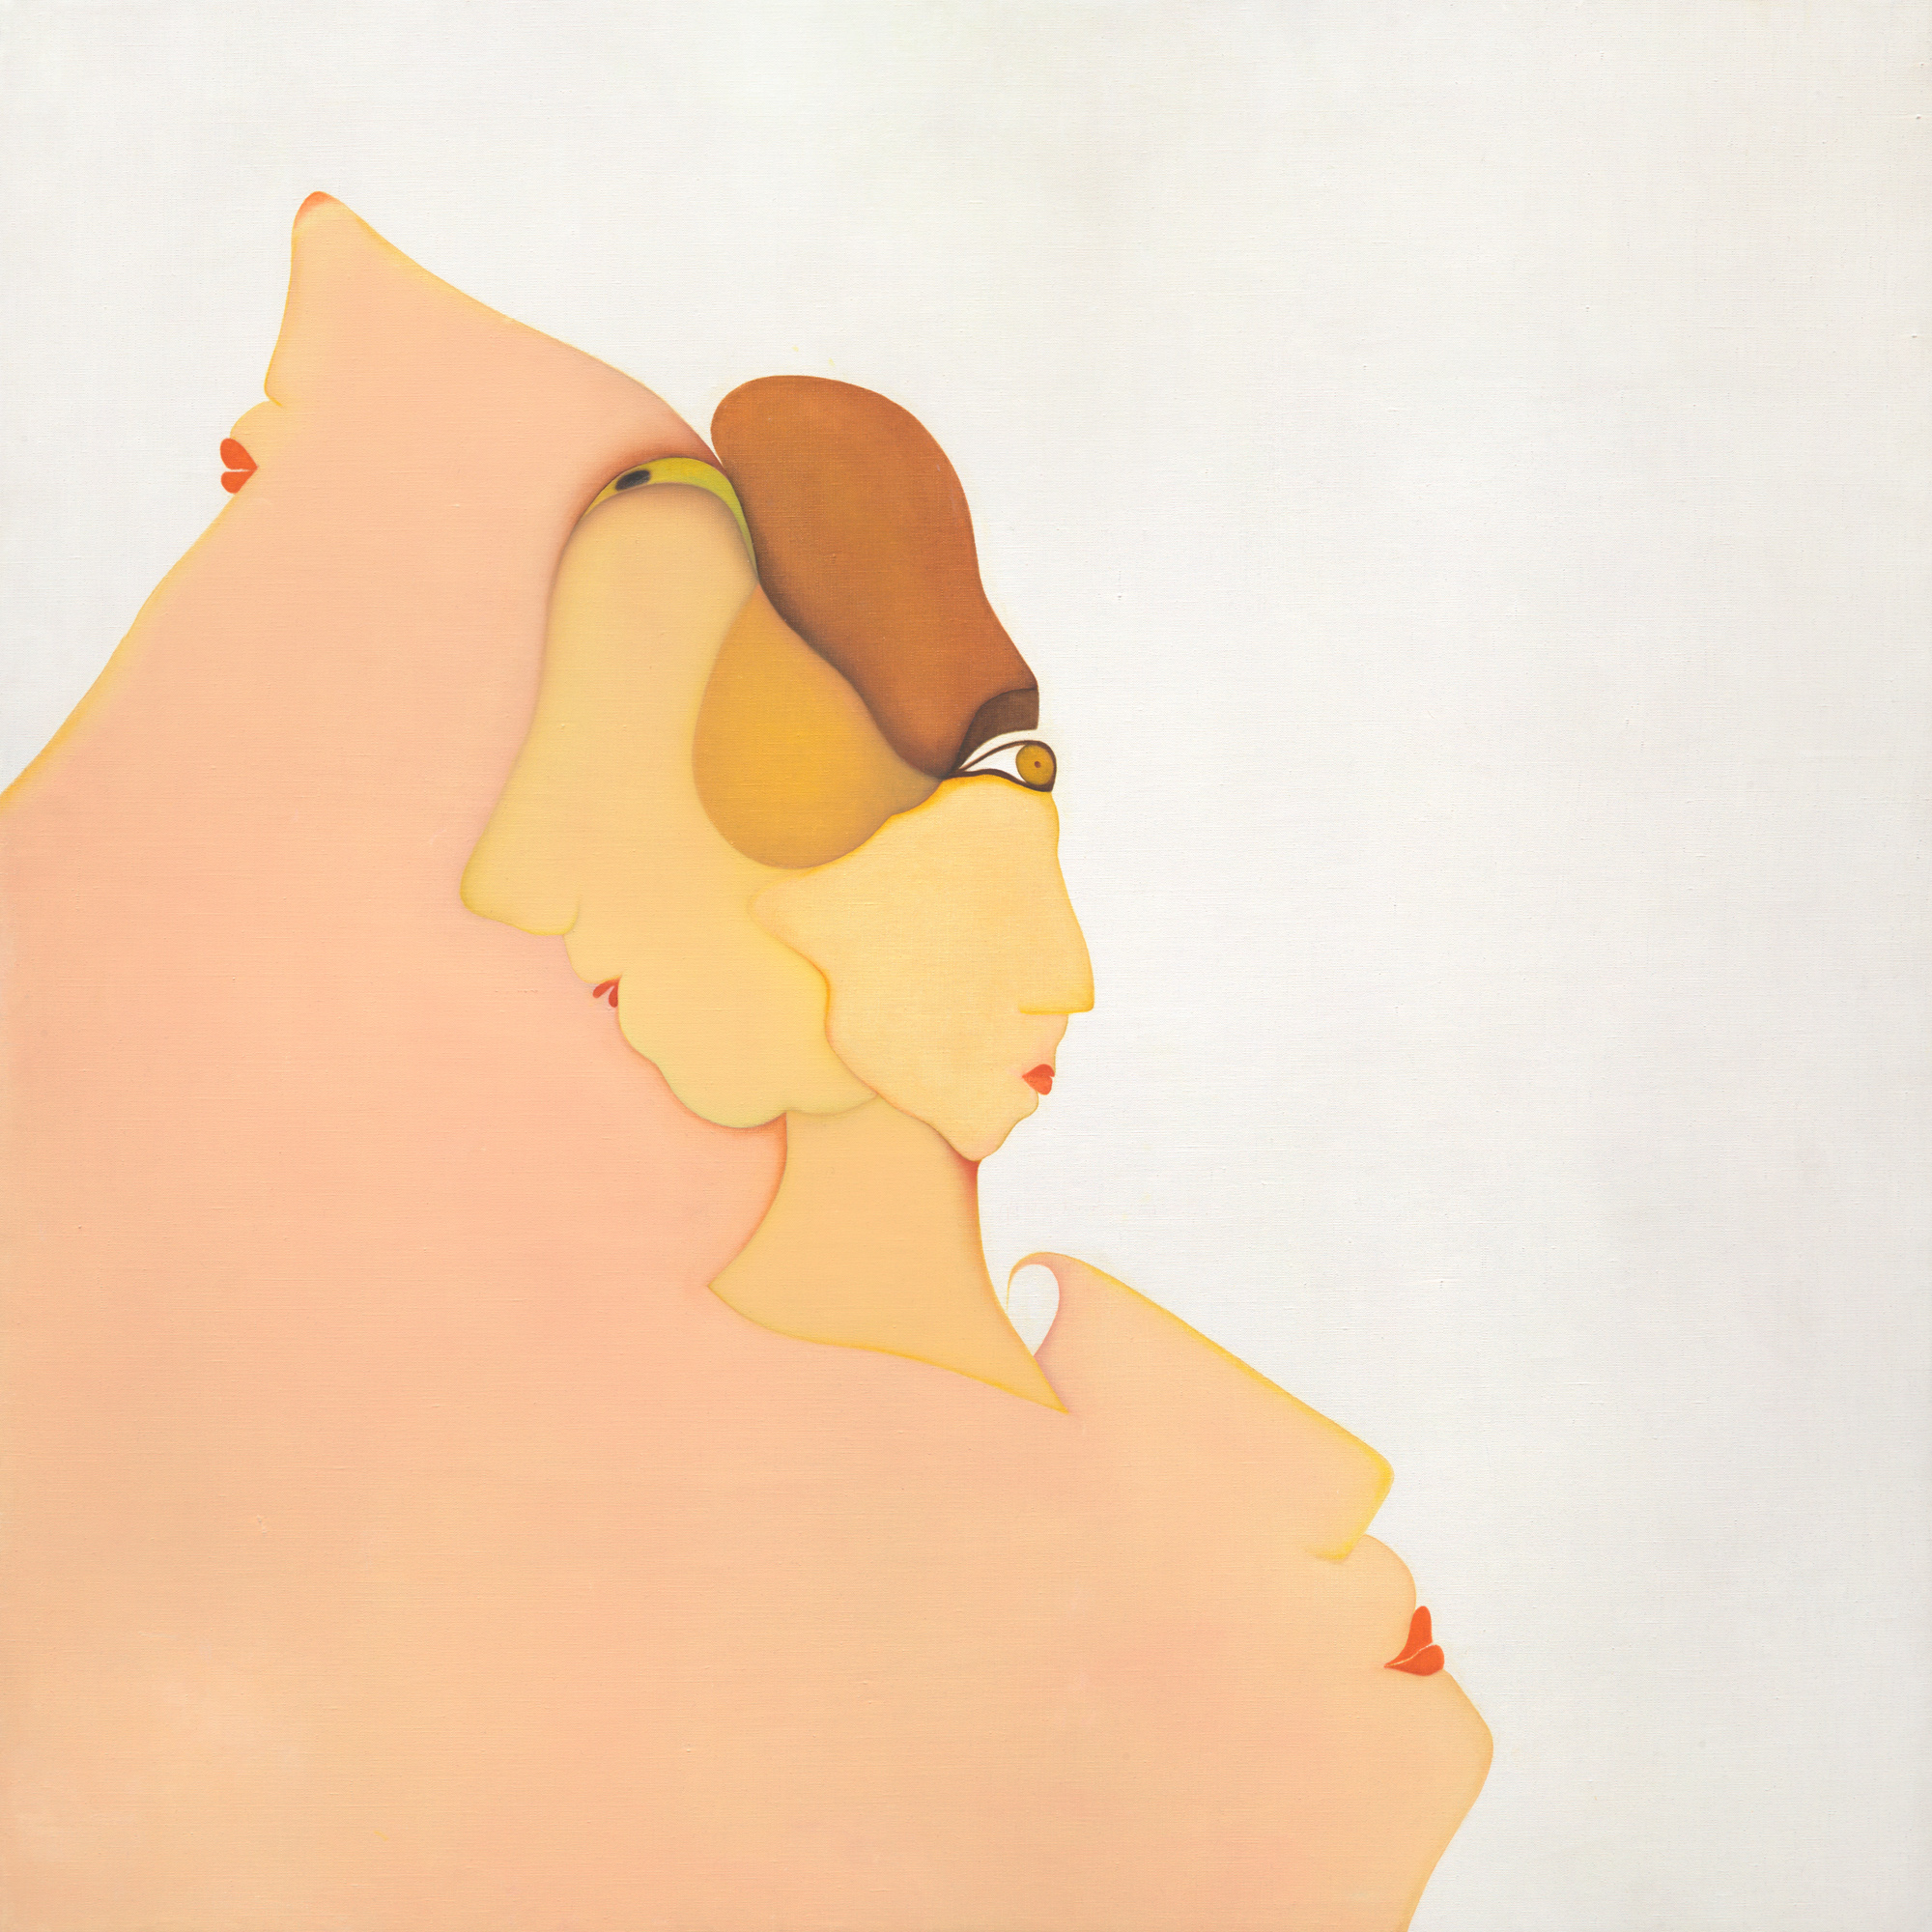 Huguette Caland   Eux , 1978 oil on linen 39.5 x 39.5 inches 100.3 x 100.3 cm